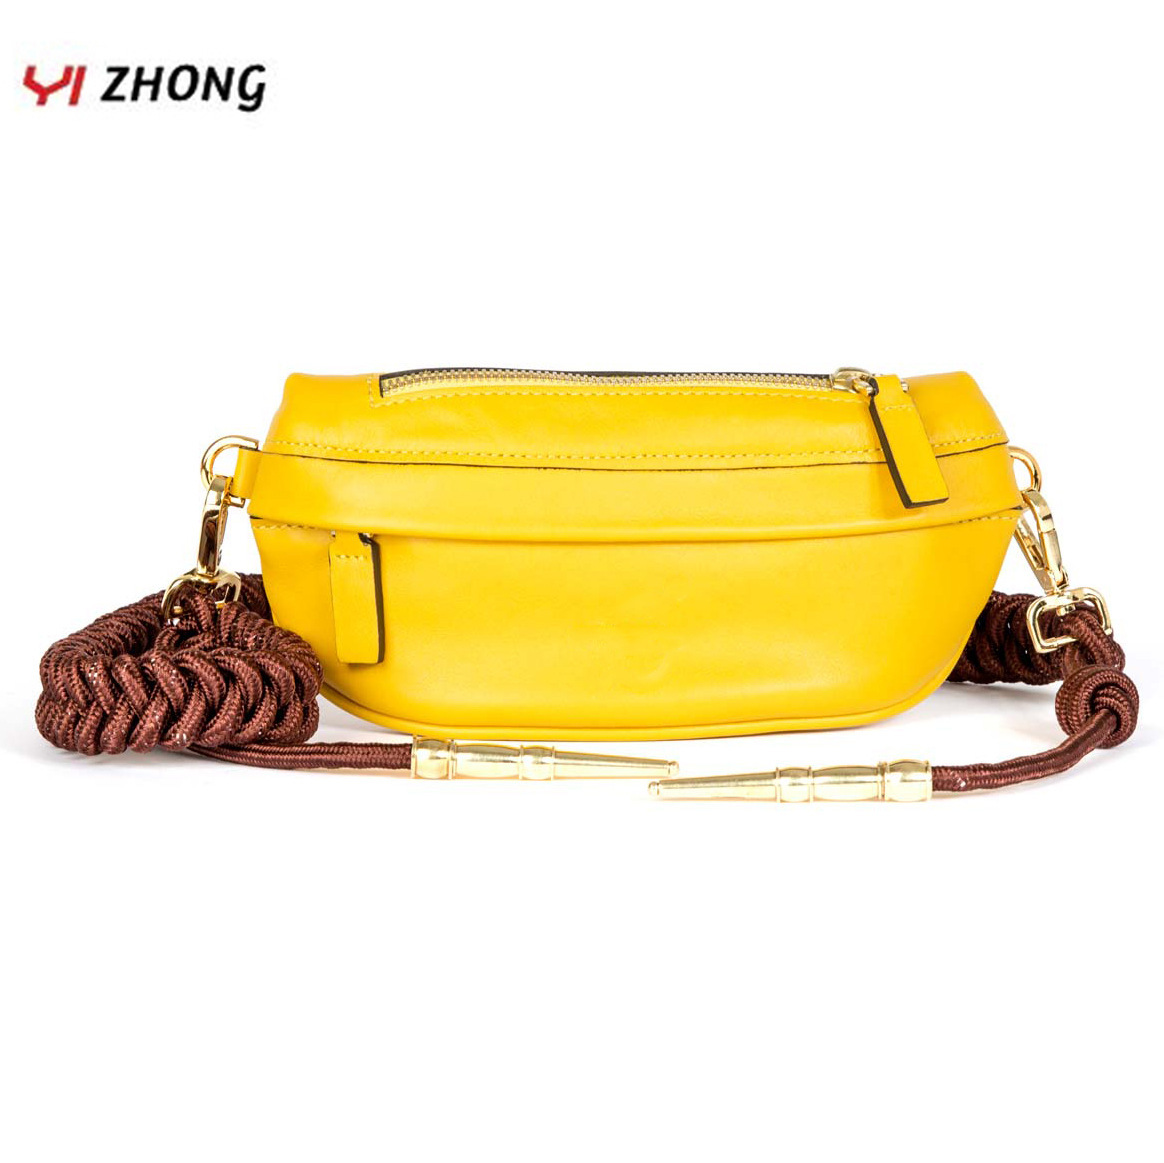 YIZHONG Braided Knot Waist Bag Luxury Designer Chest Bag  Leather Women Fanny Packs Fashion Belt Bag Crossbody For Women